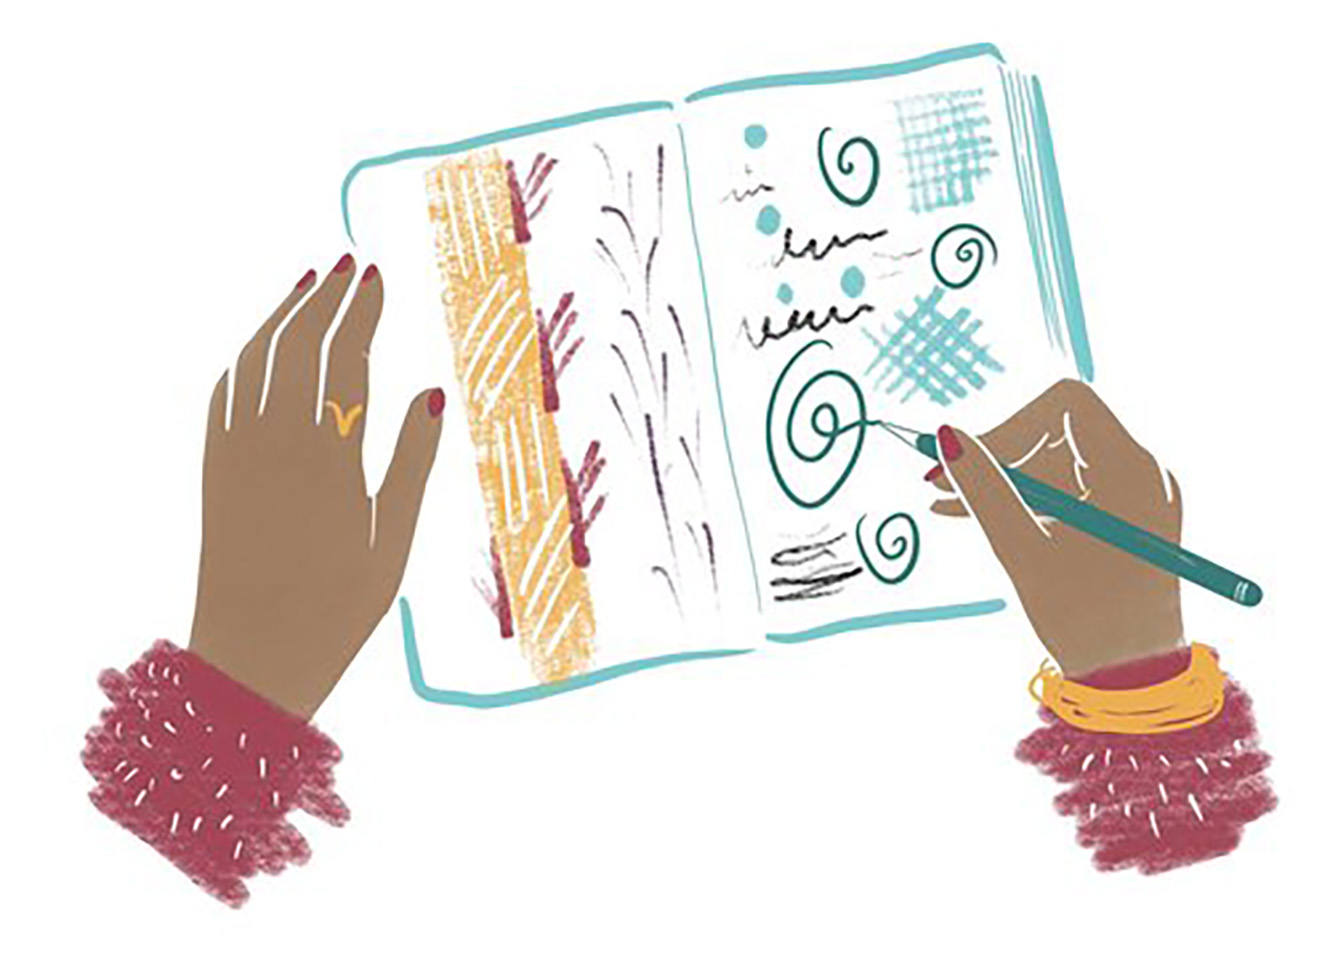 journaling, mindfulness, journaling ideas, , What's All This About Journaling?How do I start journaling?, , What are the benefits of journaling?, What does journaling do to the brain?,What should write in my journal?13 Ways to Use a Journal to Grow in Success,